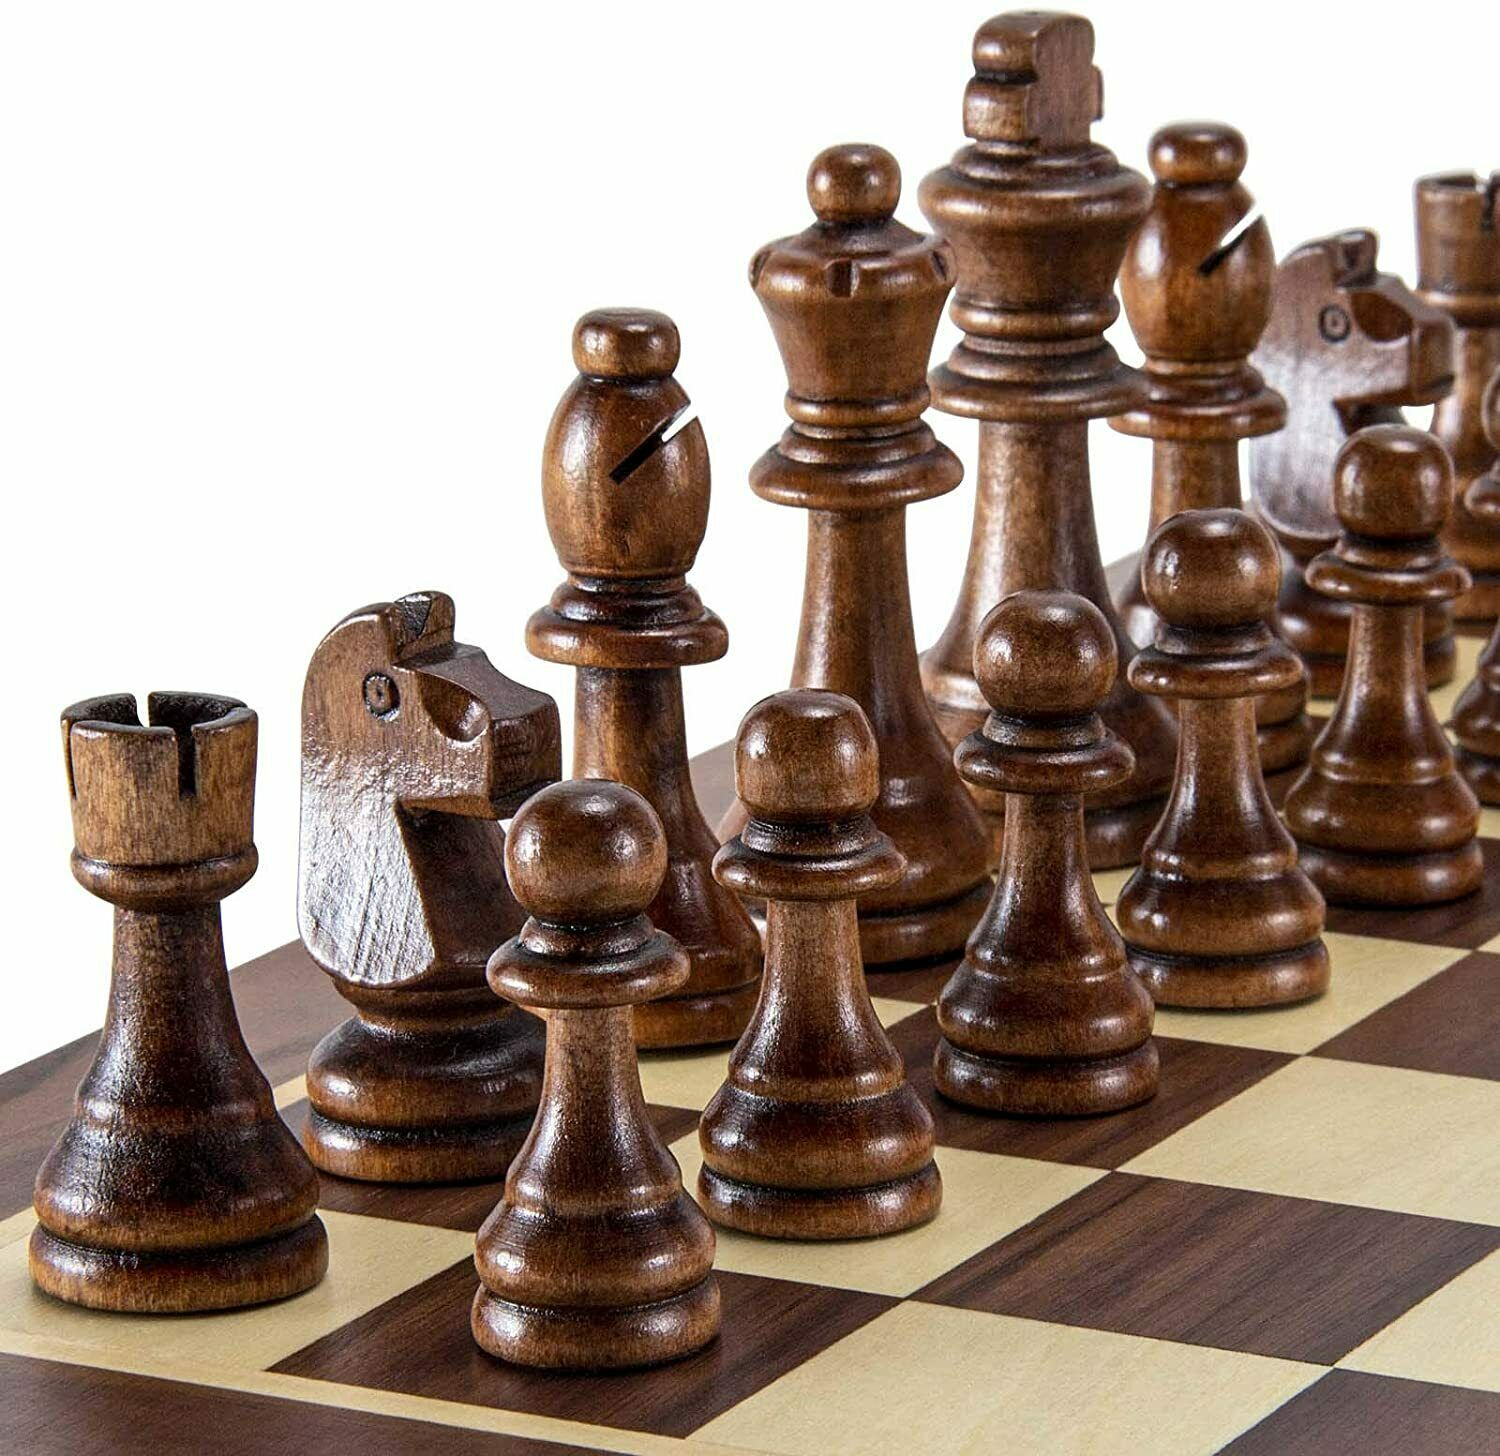 Buy Best Wooden Chess Pieces Staunton Game Chessmen 3.15 inch King Handcrafted Exquisite.